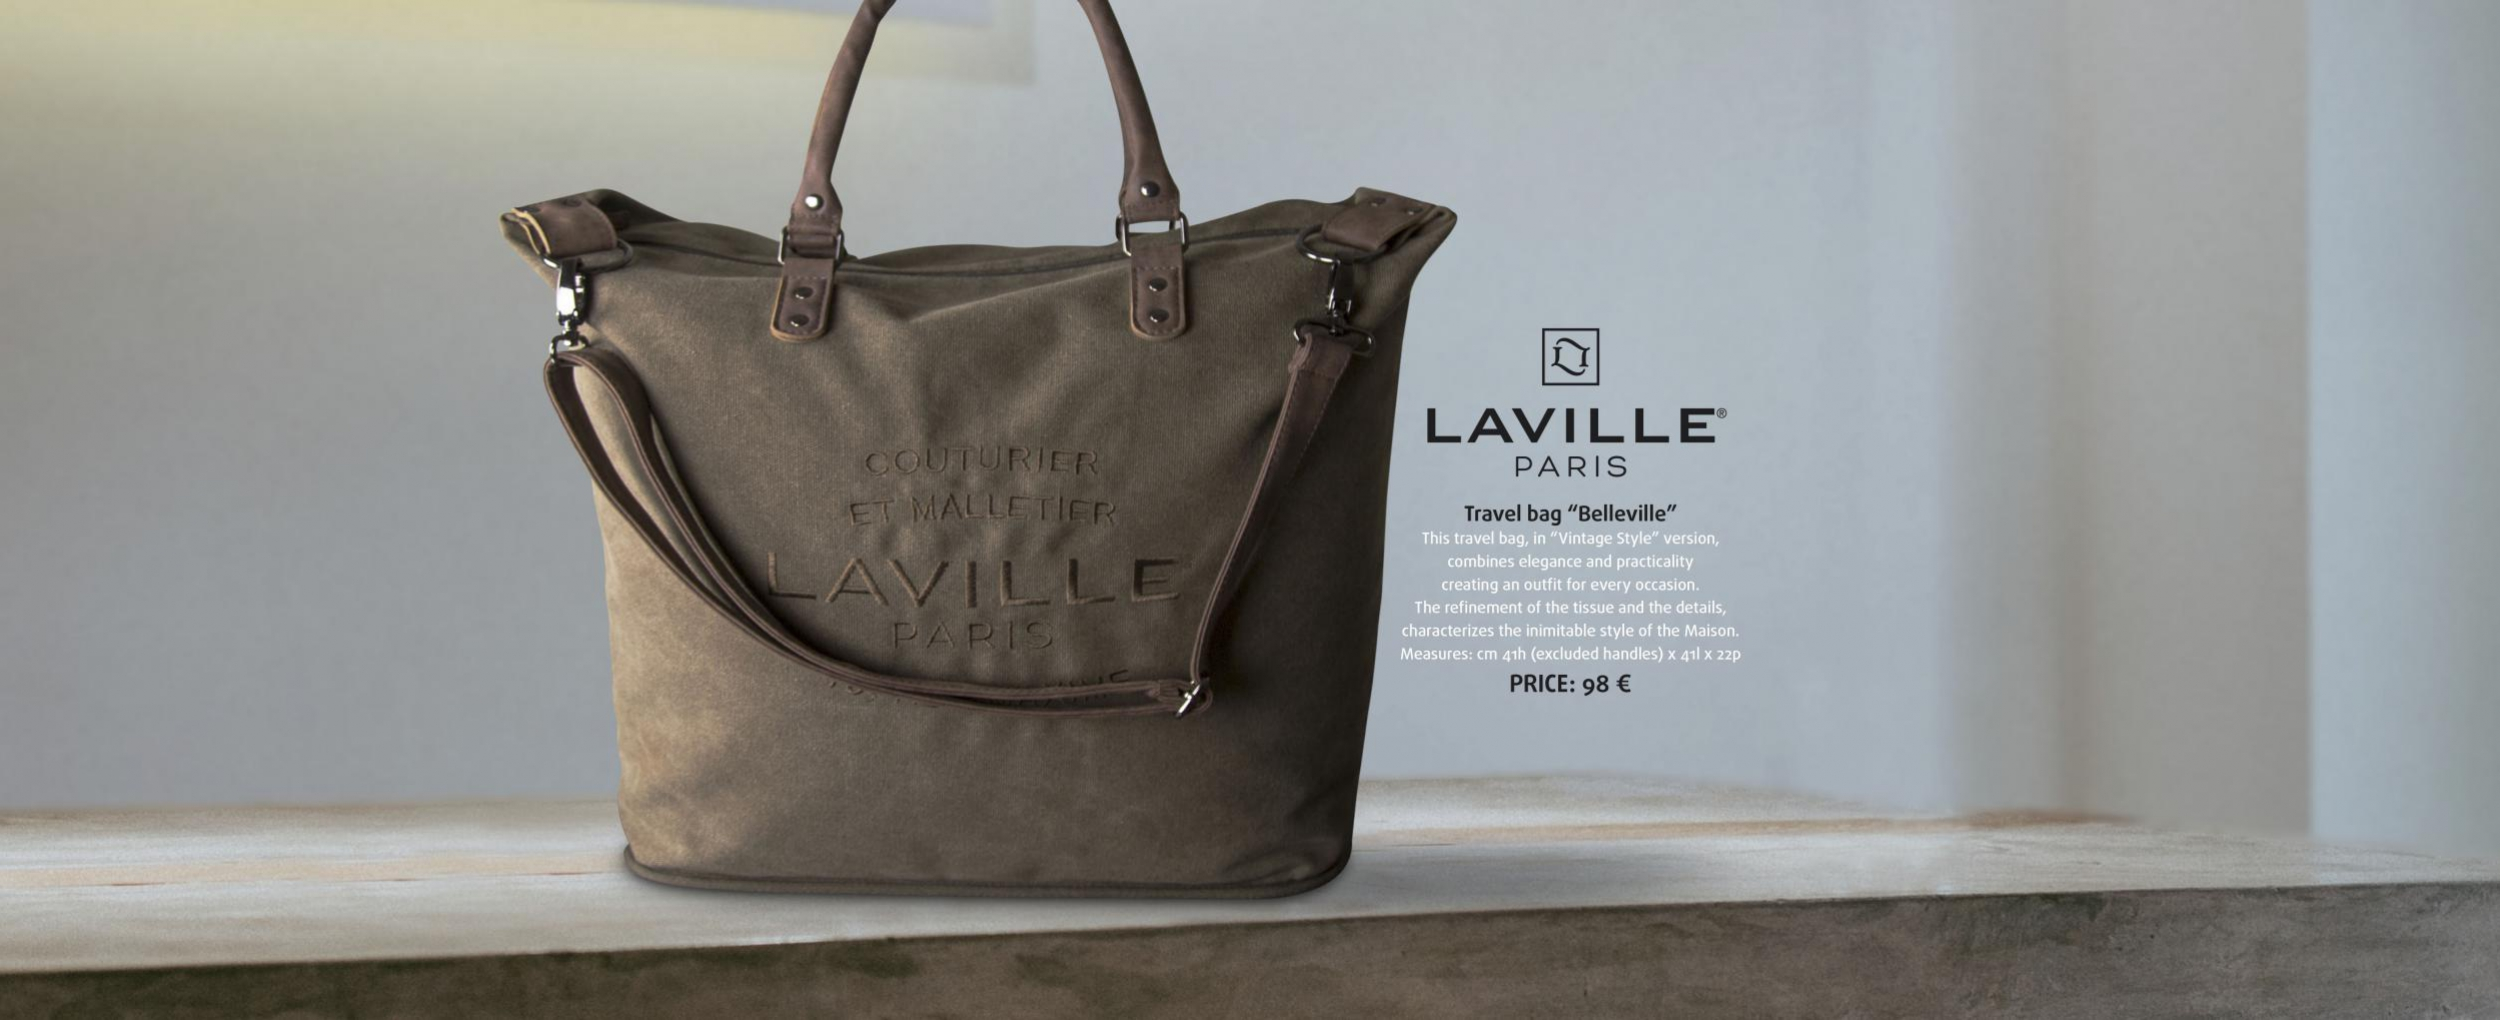 "Travel bag ""Belleville"""